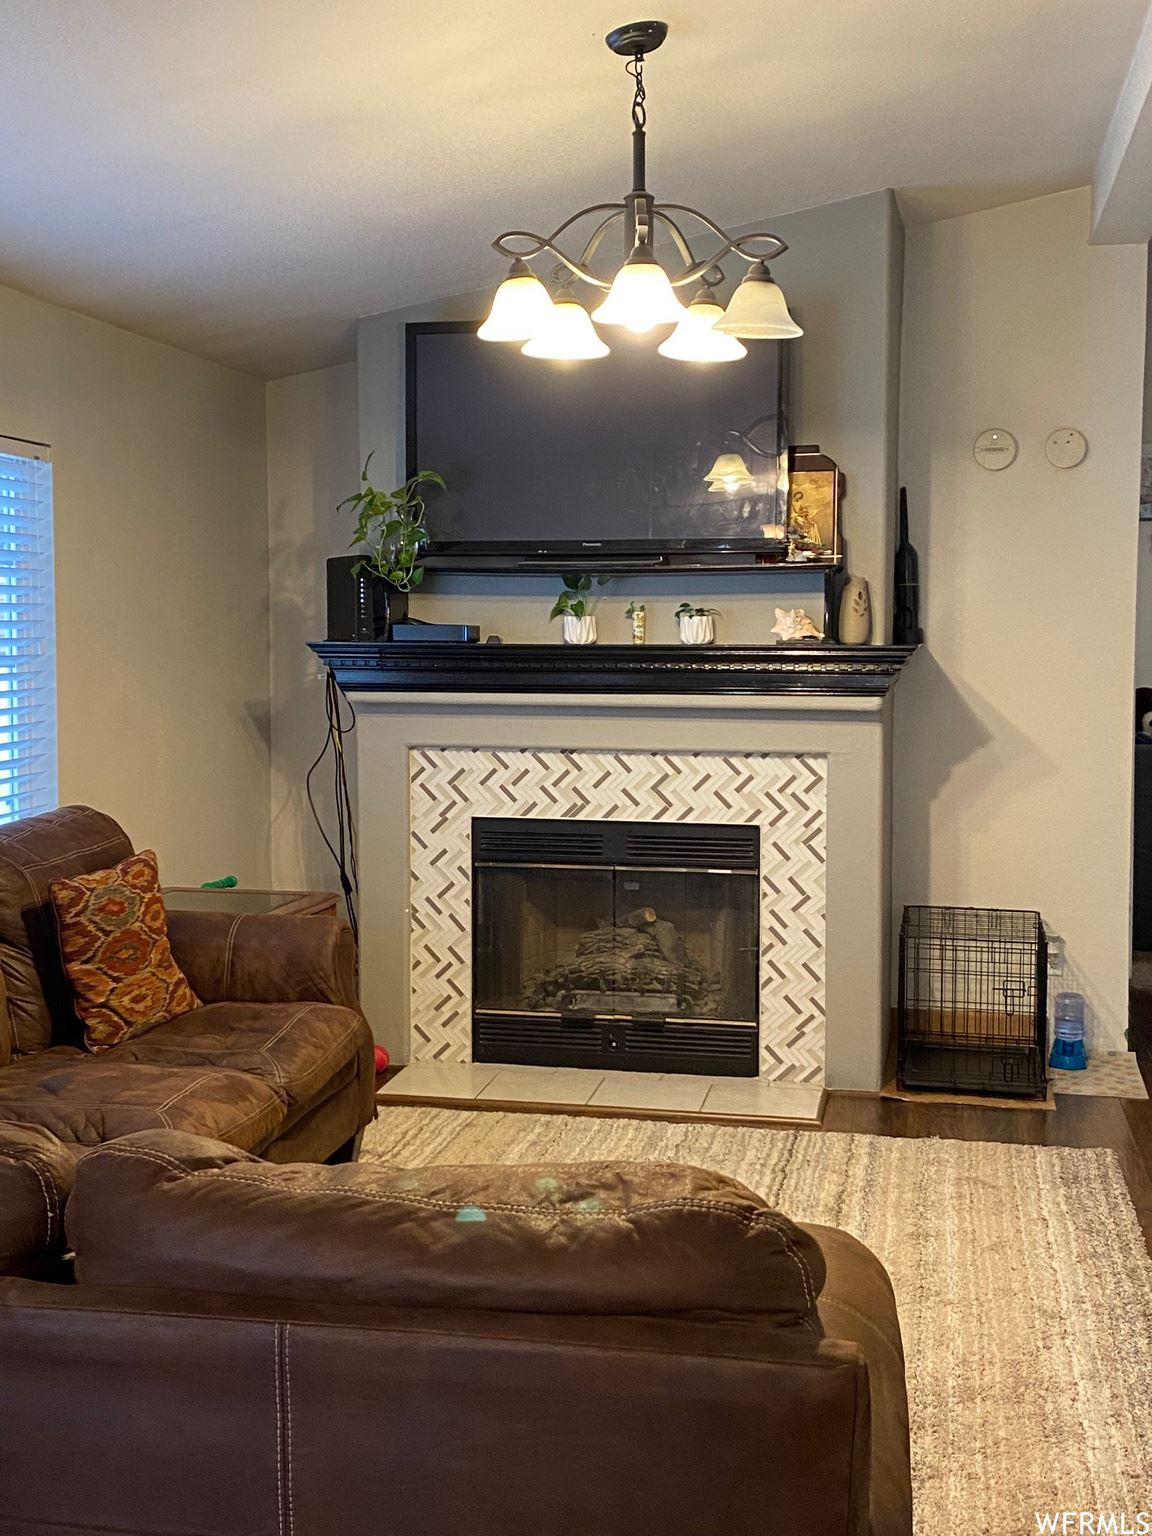 Photo of 1091 W BARBERRY S DR #139, Taylorsville, UT 84123 (MLS # 1766099)